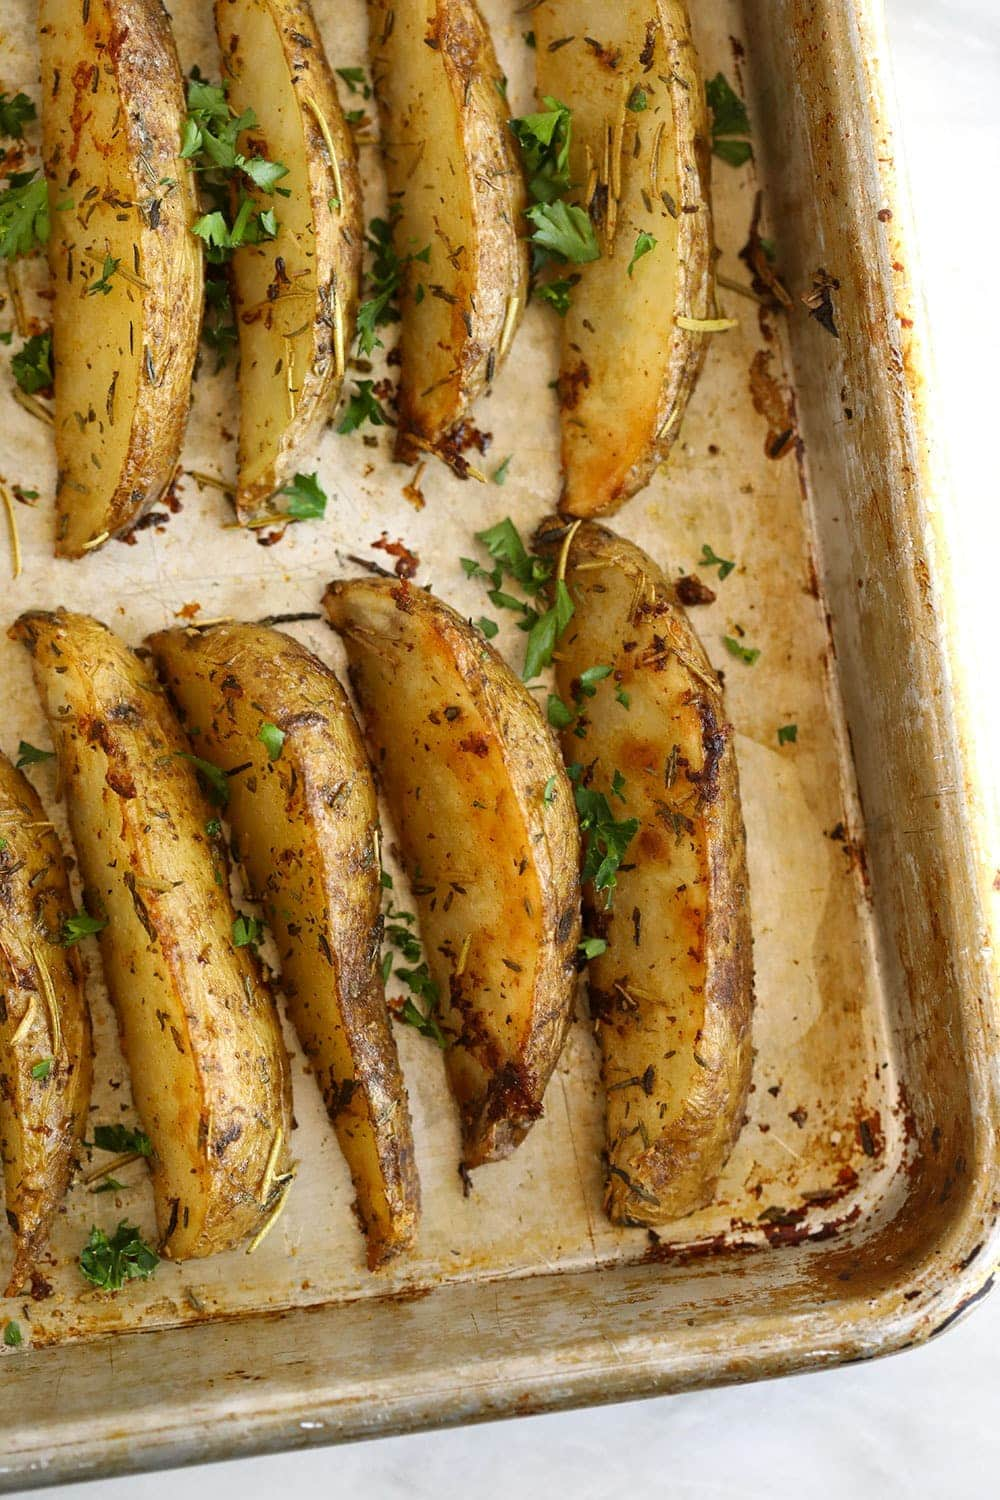 Potato wedges on a baking sheet with fresh parsley sprinkled over the potato wedges.